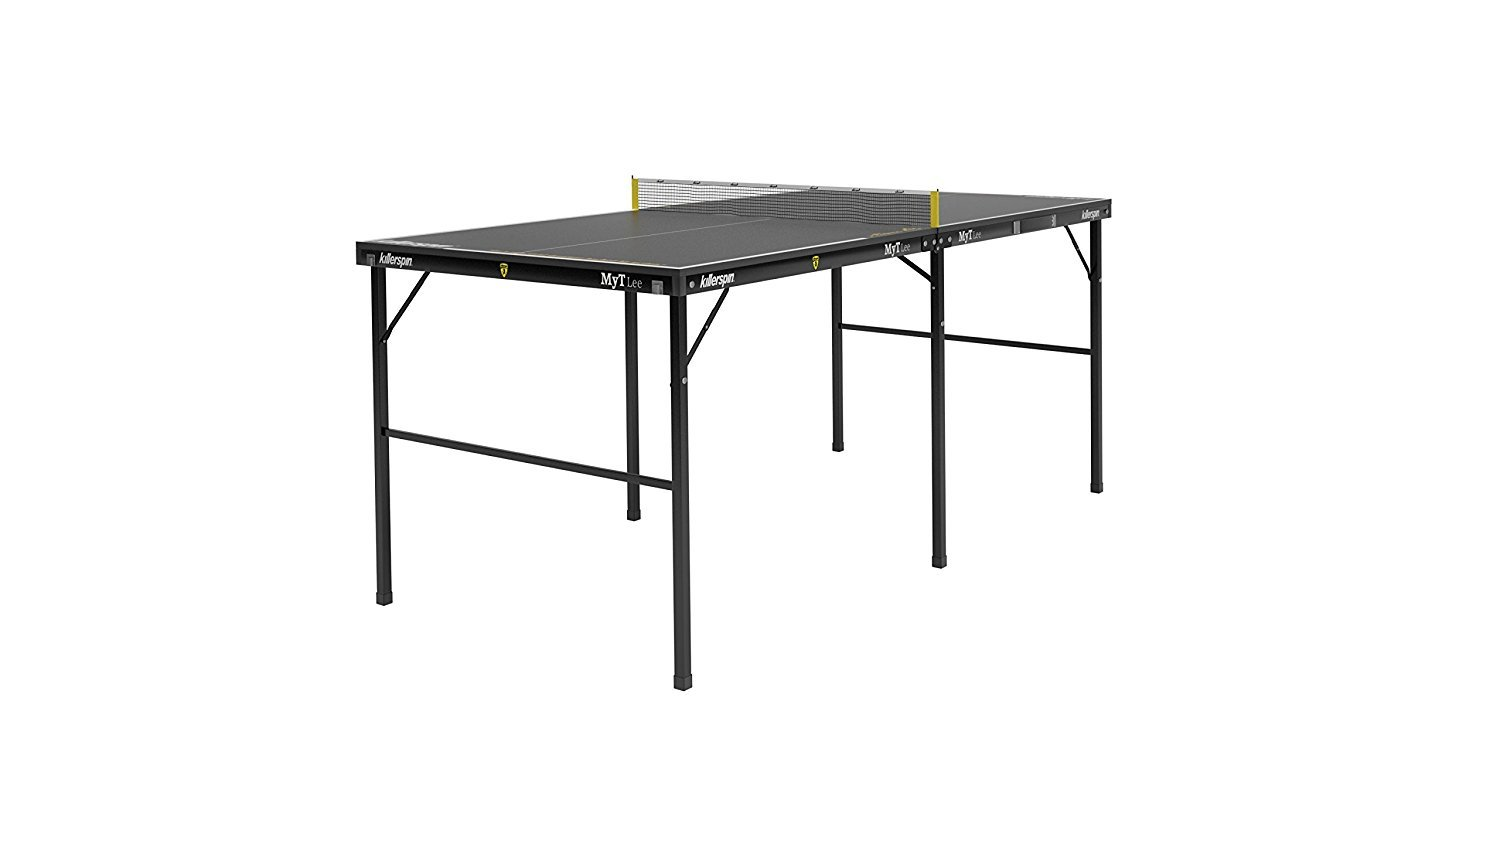 Killerspin MYT Lee Table Tennis Table - Small Foldable Black Ping Pong Table with Easy and Quick Setup